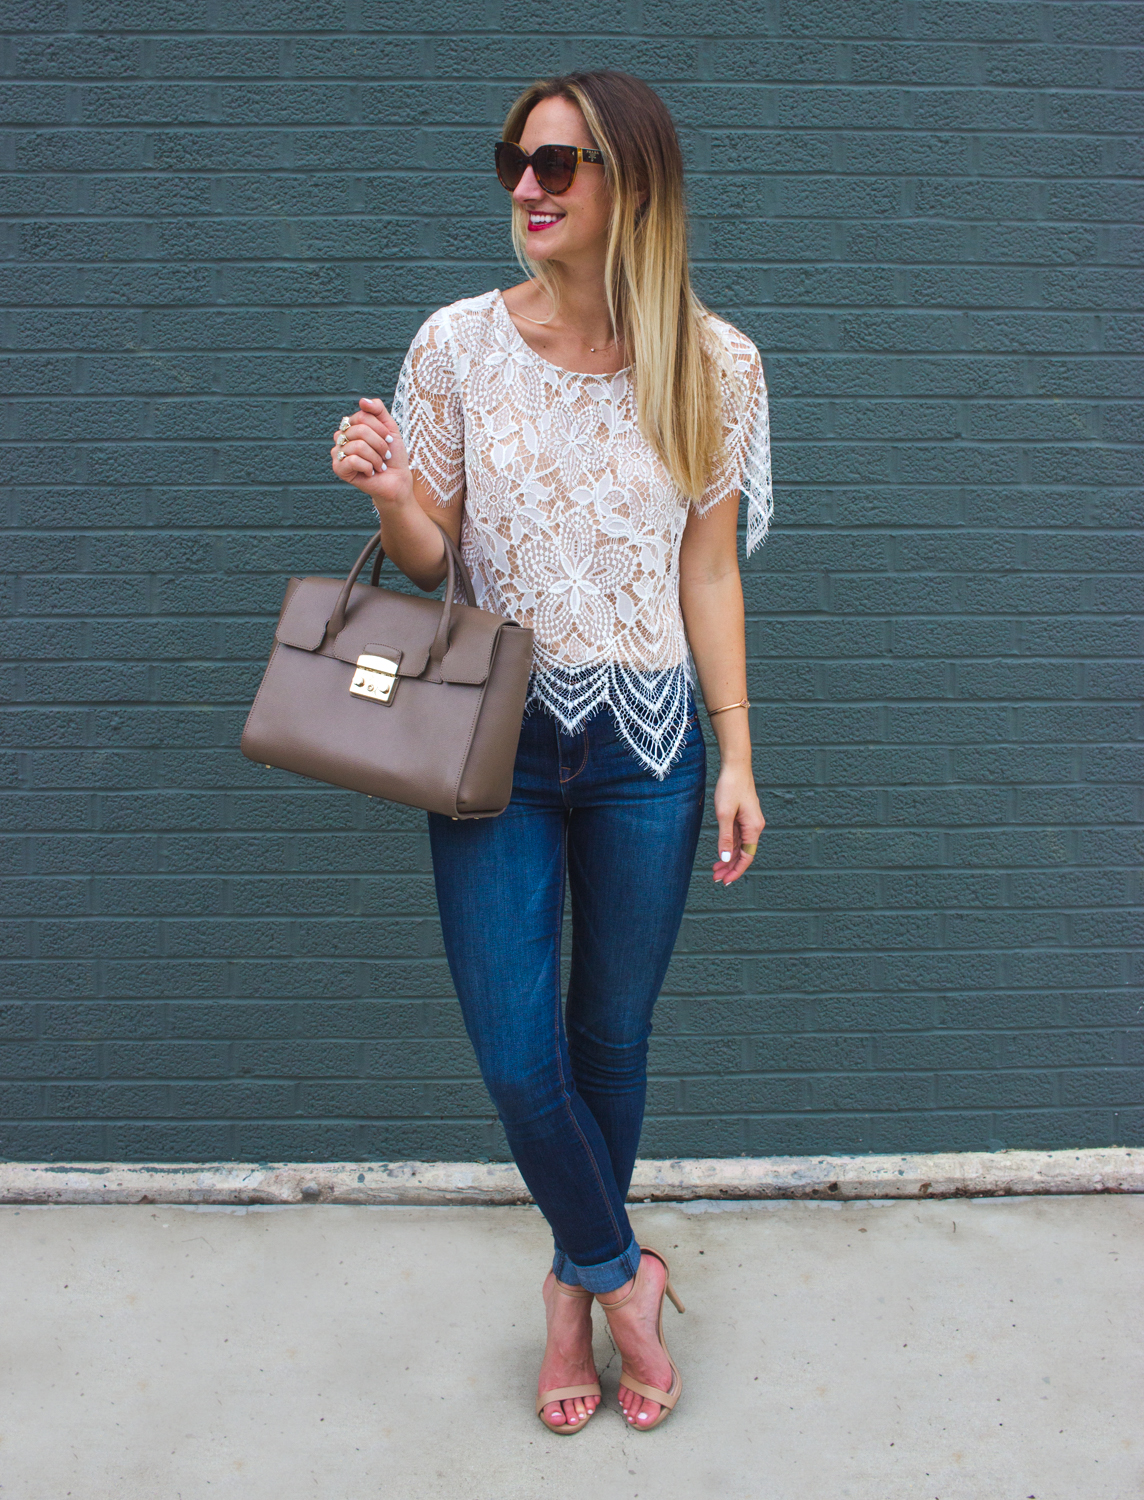 livvyland-blog-olivia-watson-date-night-express-skinny-jeans-lace-overlay-top-2